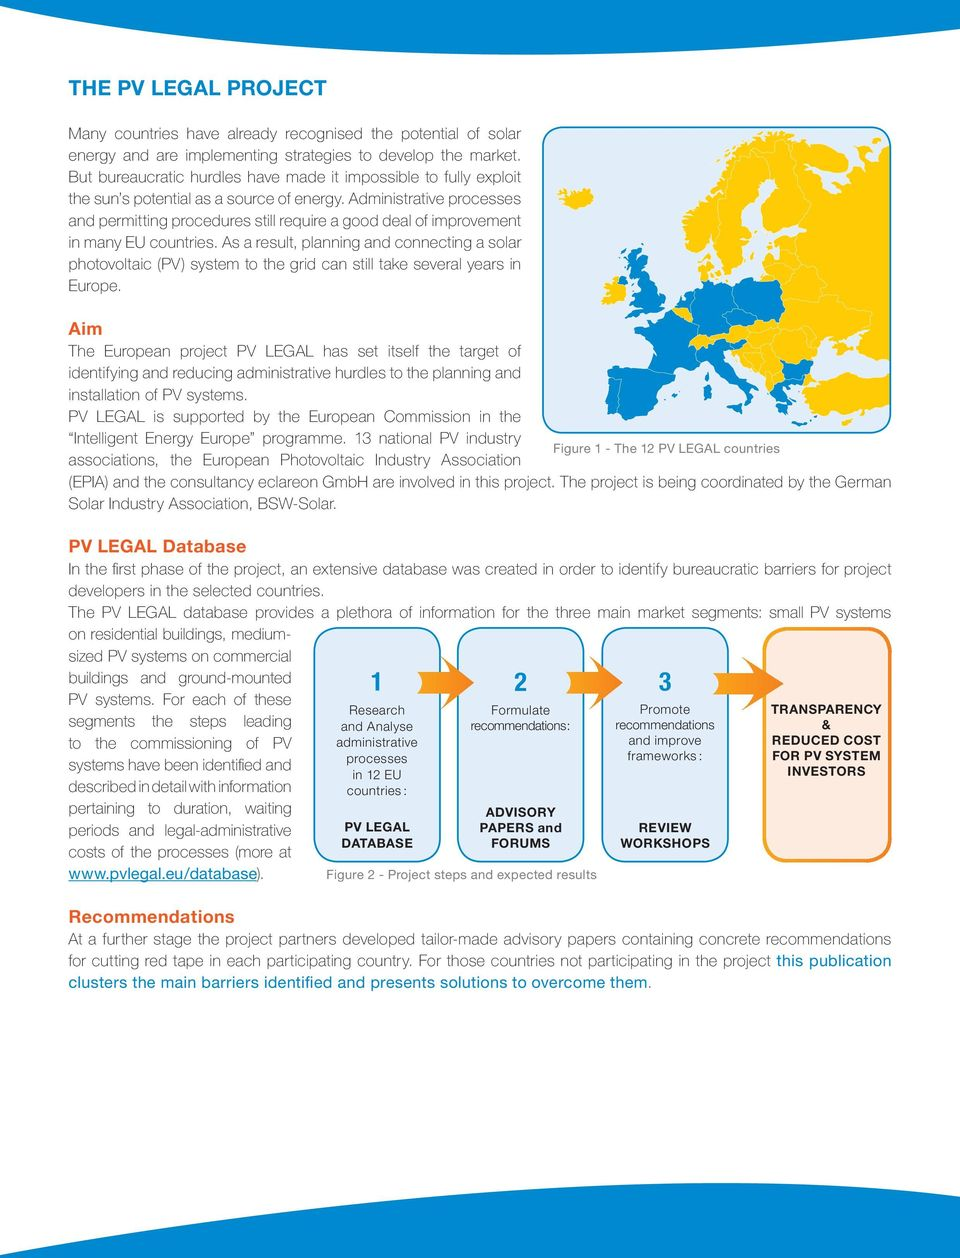 Administrative processes and permitting procedures still require a good deal of improvement in many EU countries.